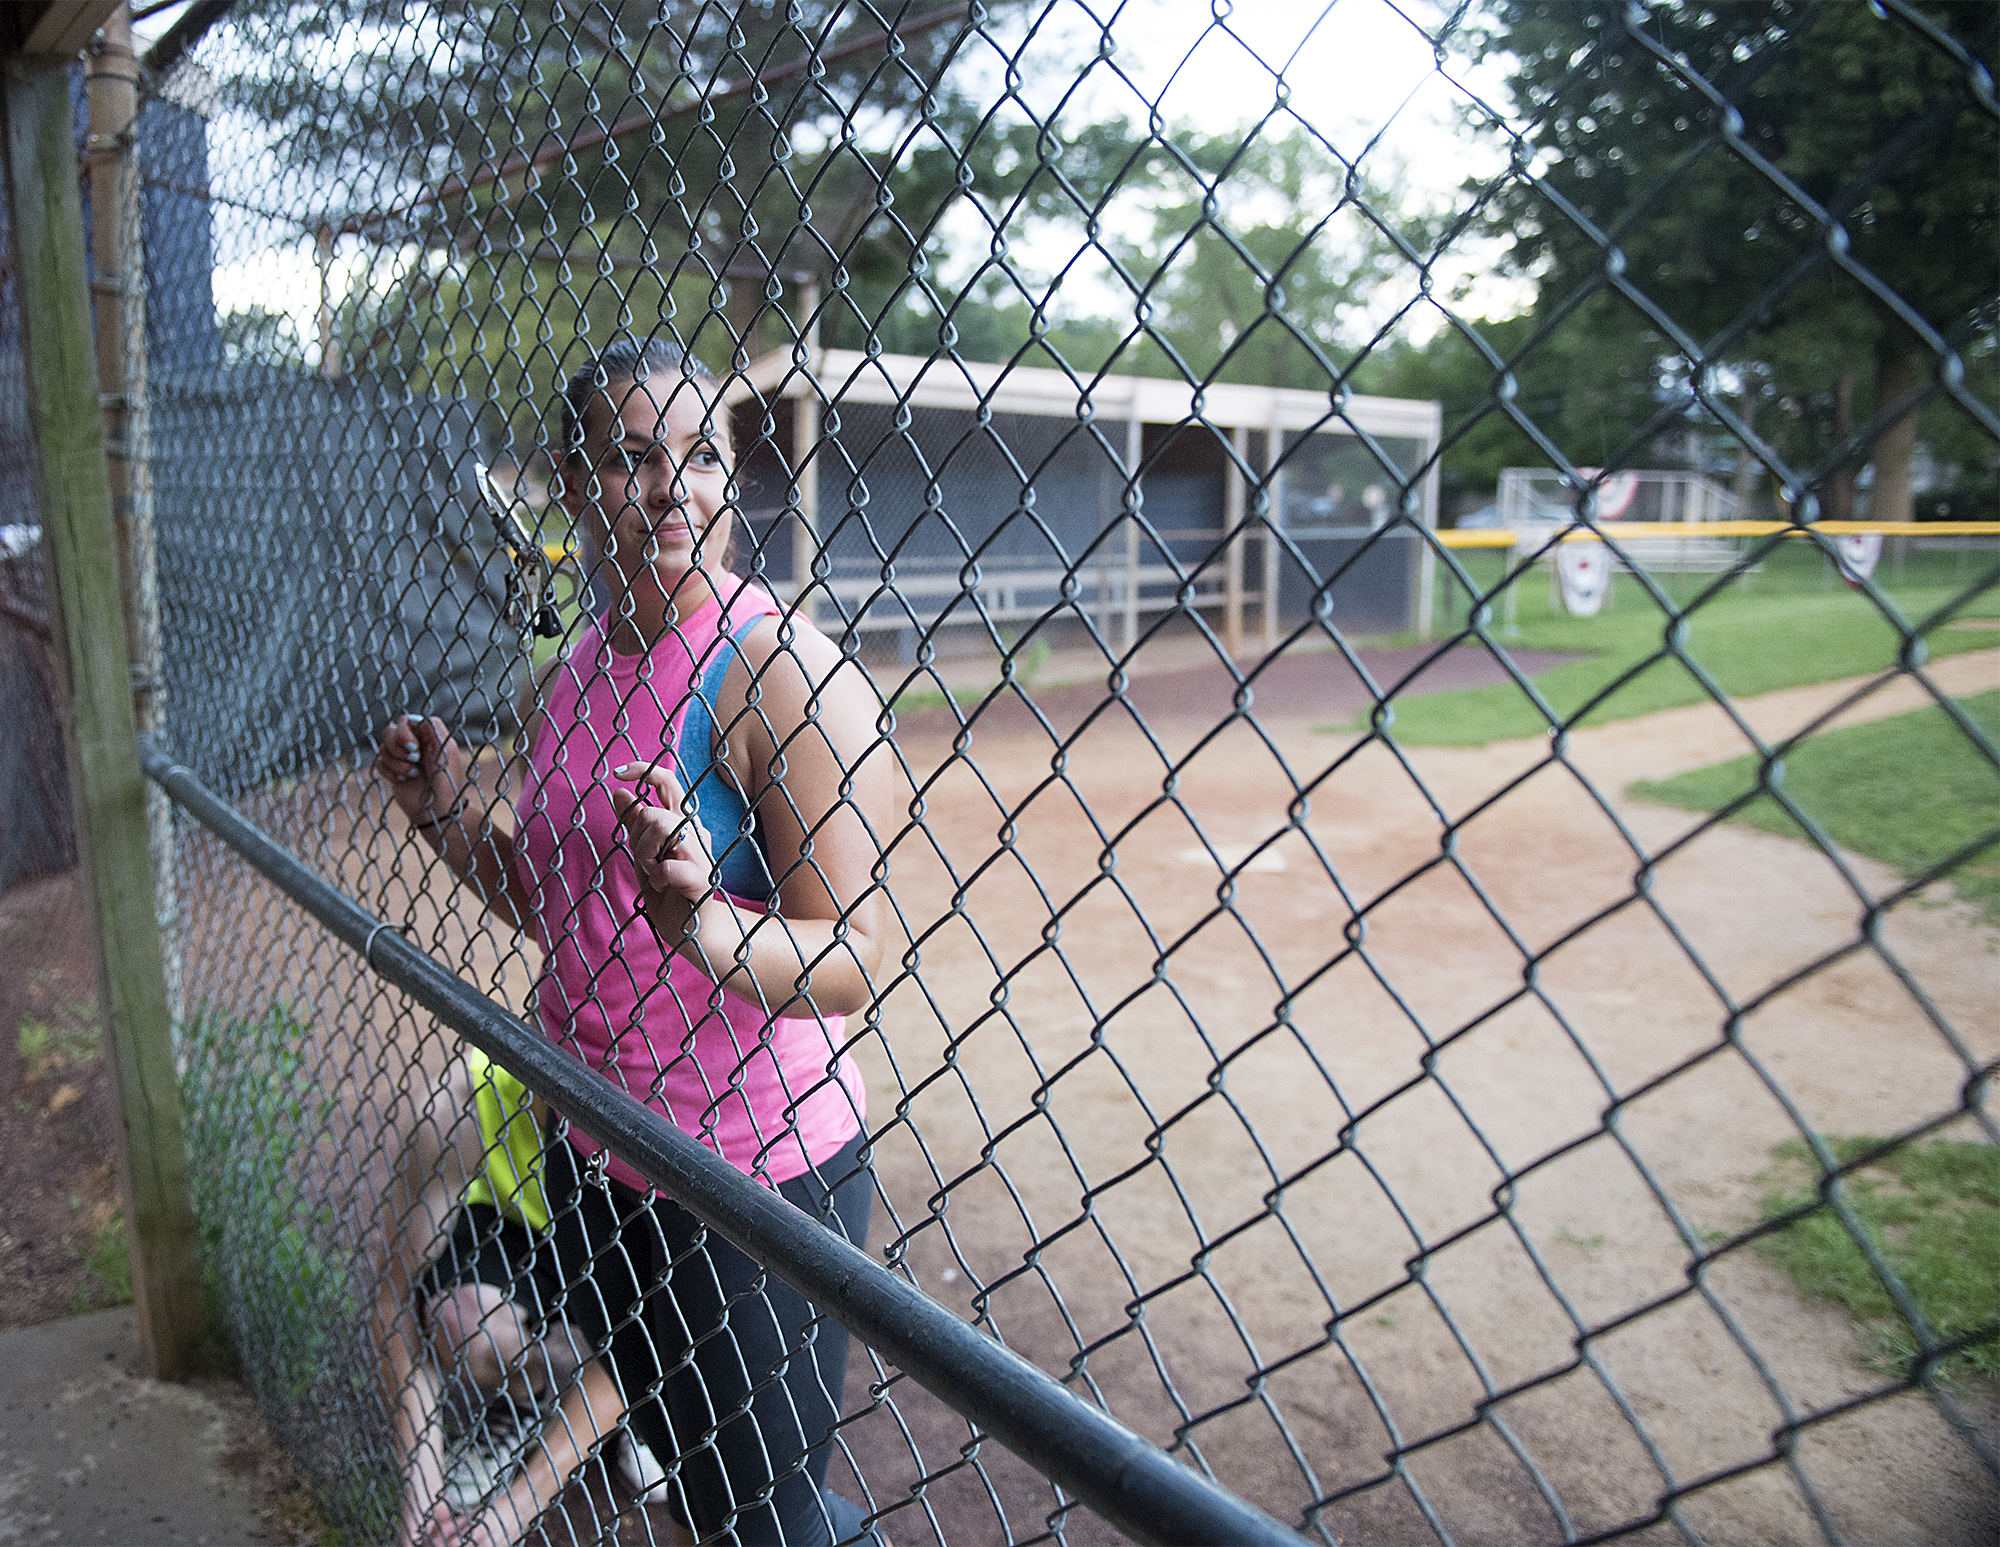 Dee Hubay waits her turn while playing kickball with family friends on Tuesday, July 21, 2015 at Williamson Park in Morrisville while Bryan was on break from his MOS job training school.